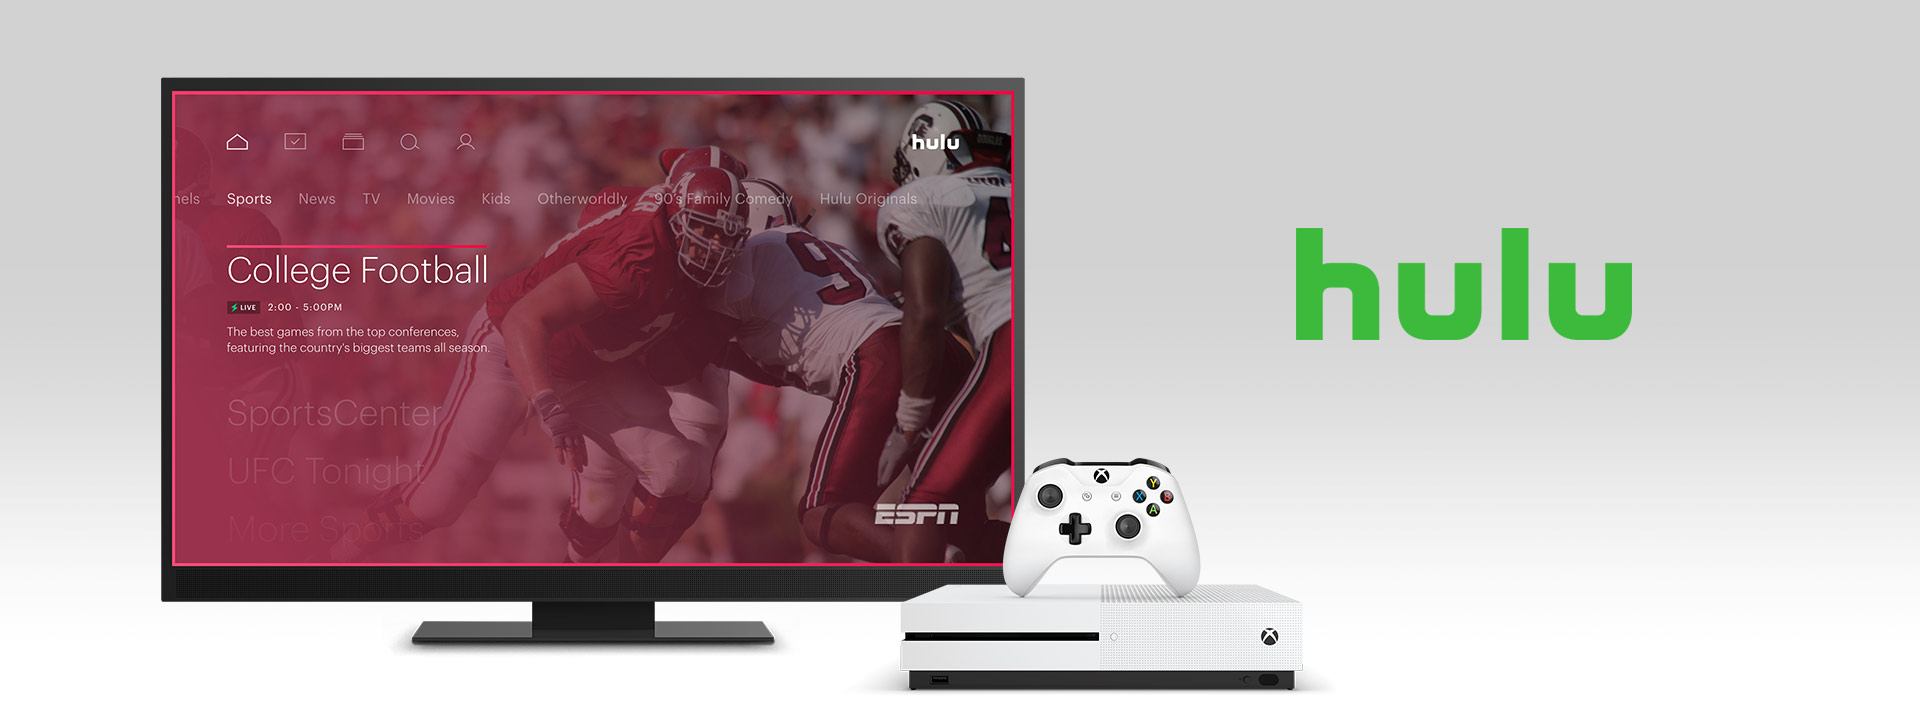 Hulu on an Xbox One